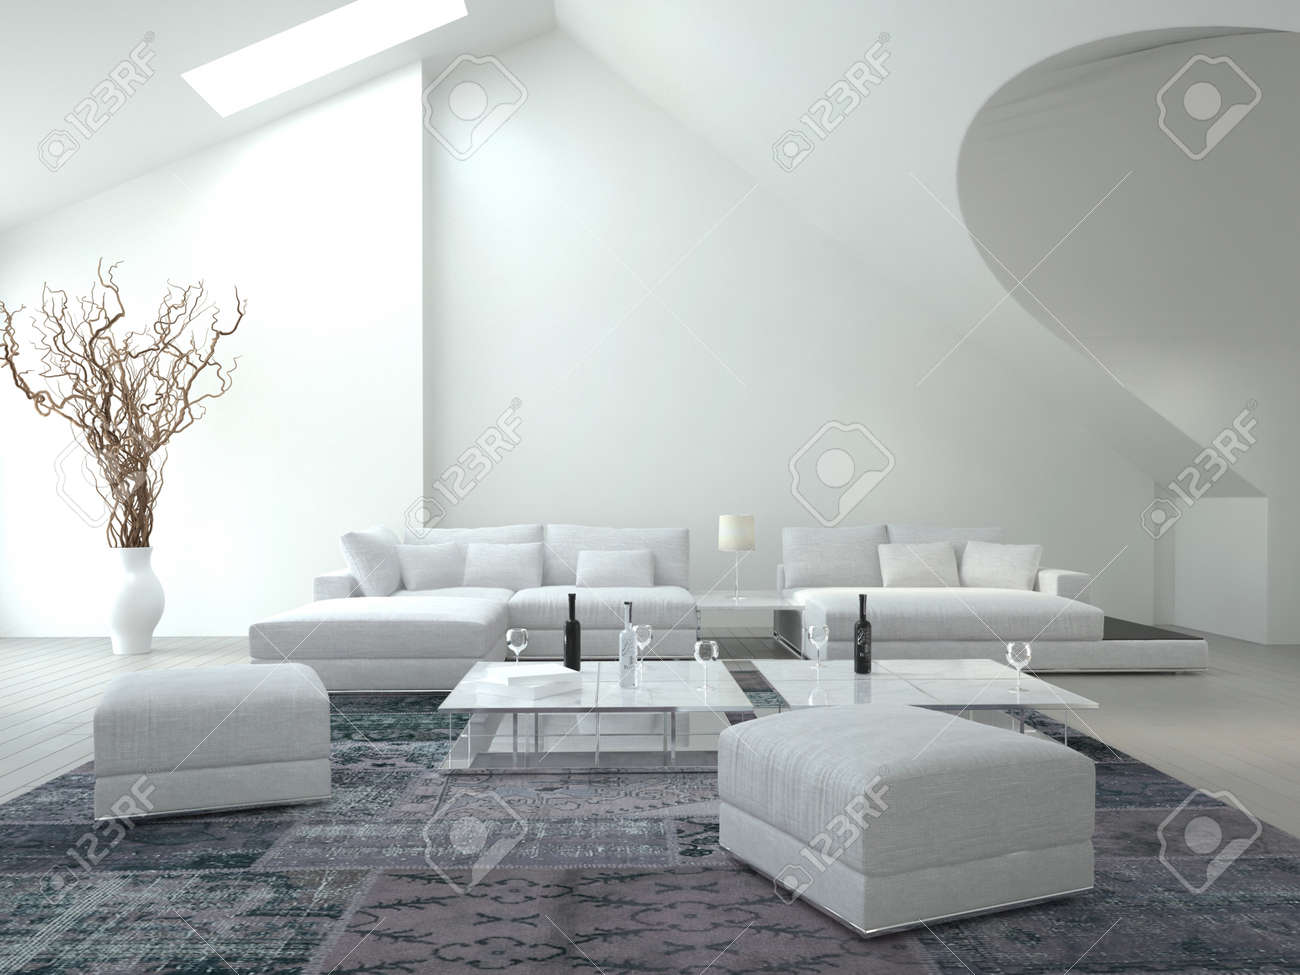 Luxury Living Room Luxury Living Room Stock Photos Images Royalty Free Luxury Living